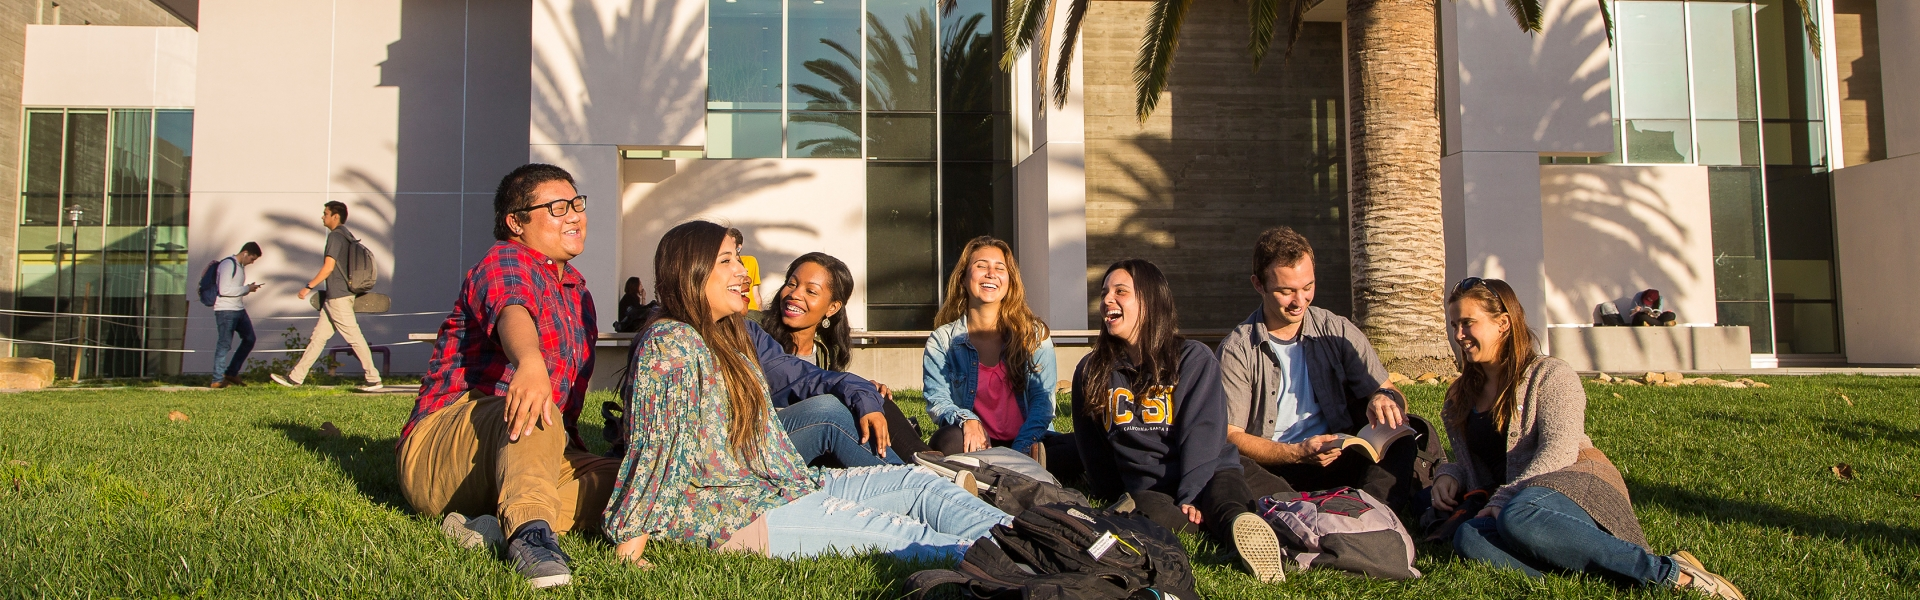 Seven students sitting in grass laughing